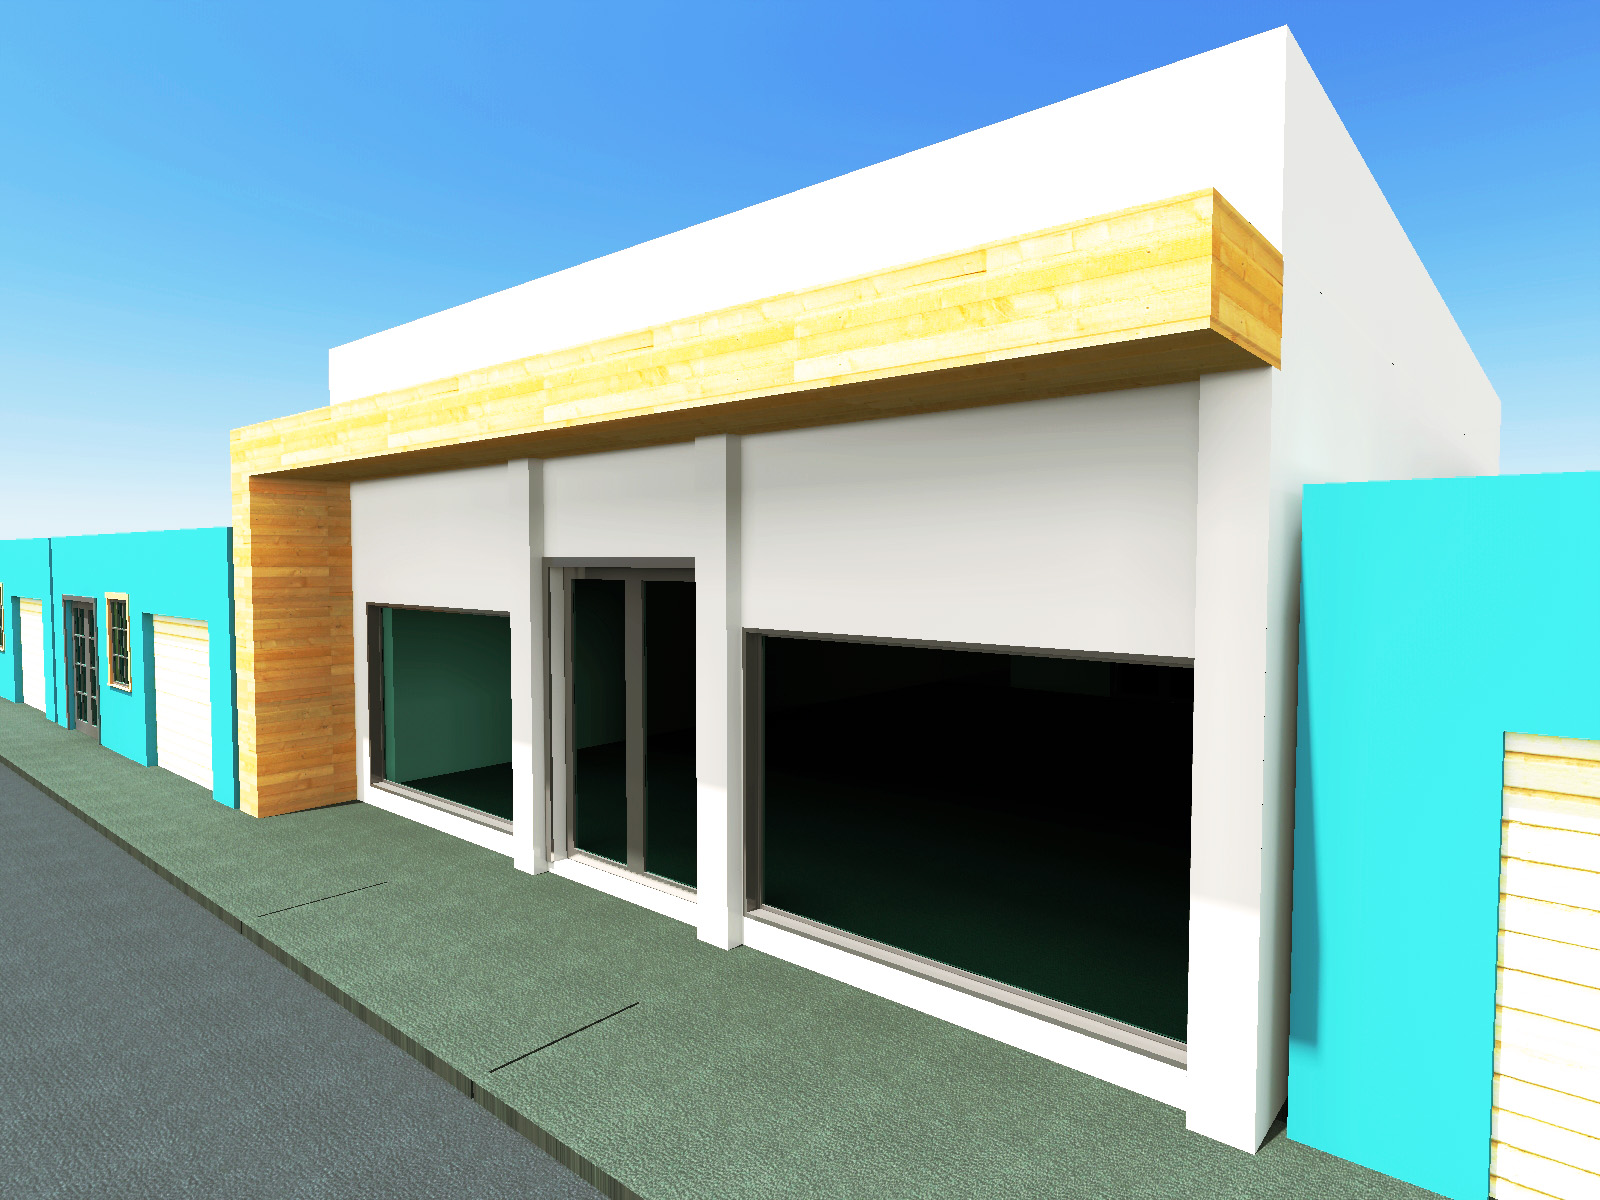 Local comercial hern ndez g g arquitectura y dise o for Local arquitectura